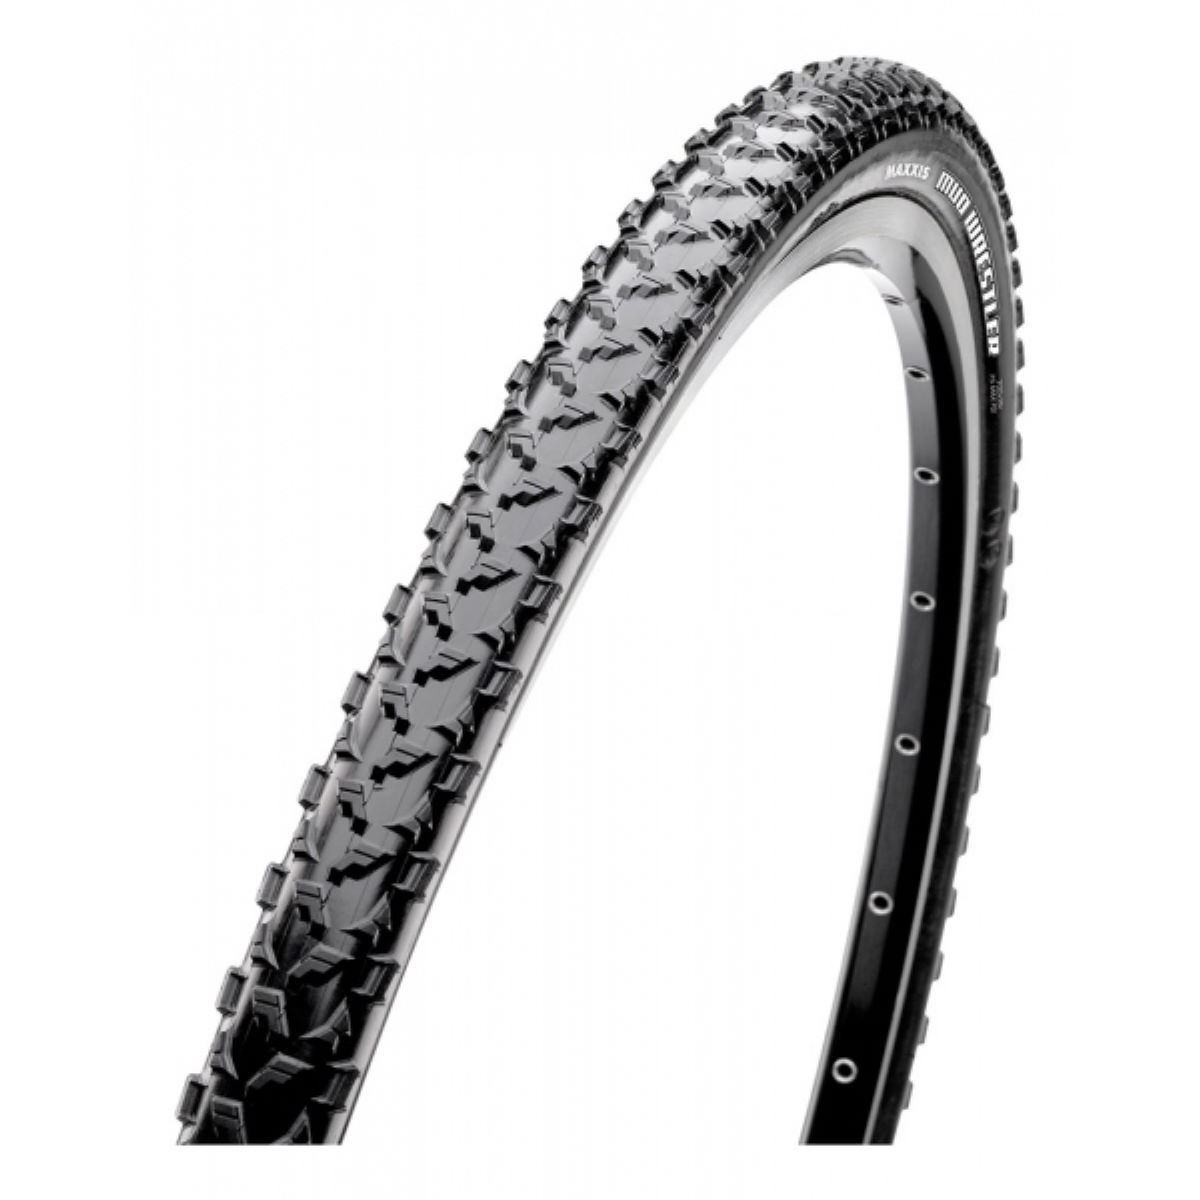 Maxxis Maxxis Mud Wrestler EXO TR Folding Tyre   Tyres